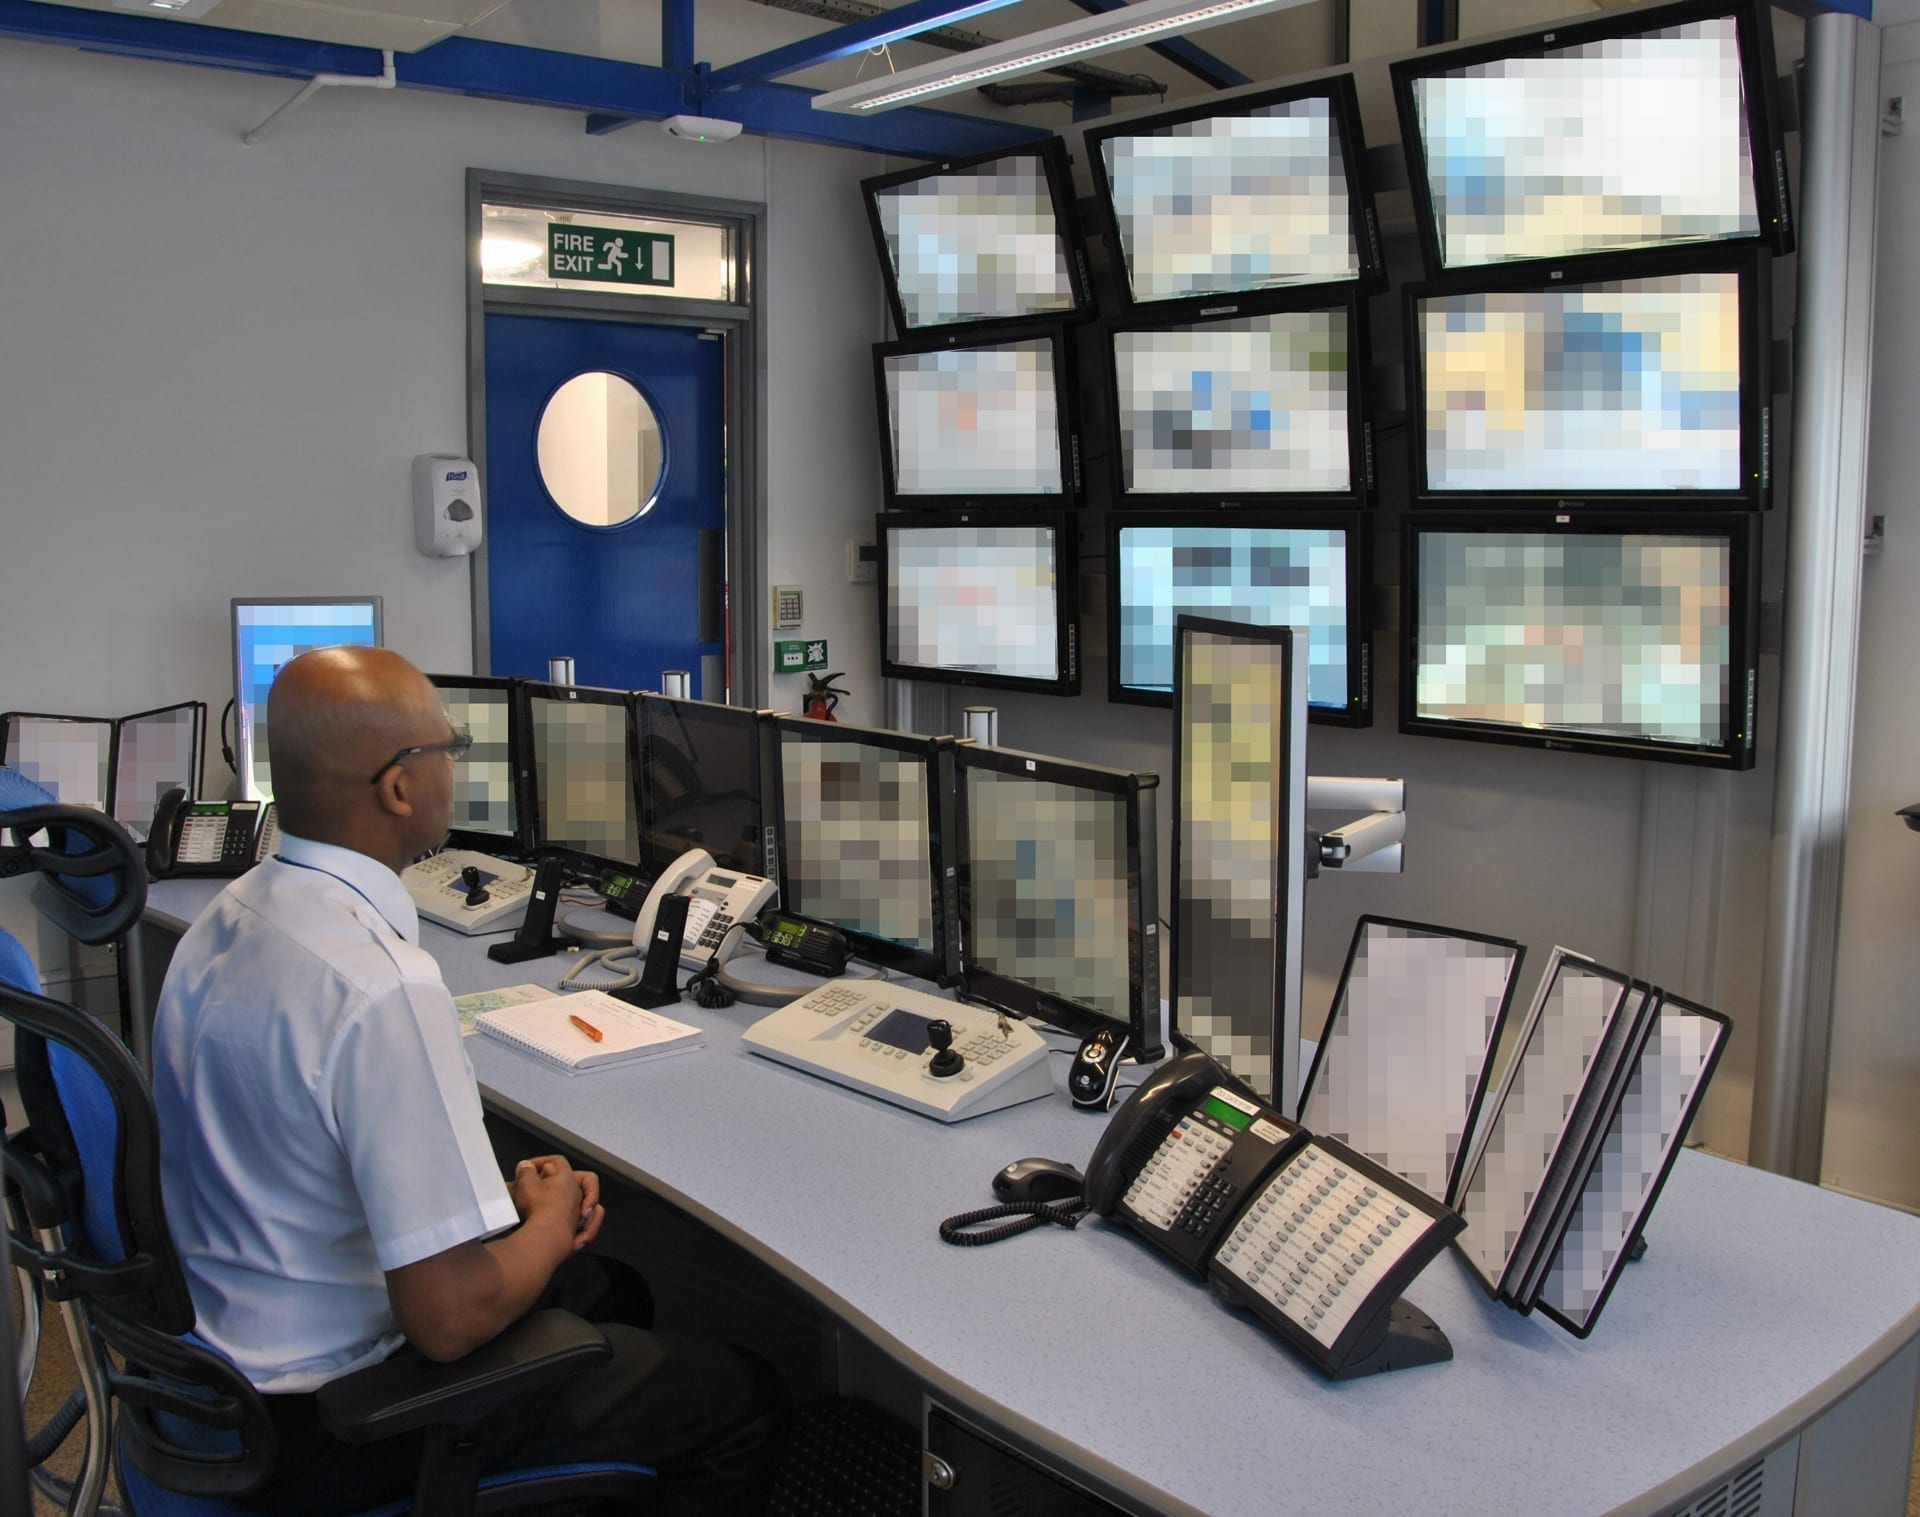 Case Study Video For Security Control Room At The